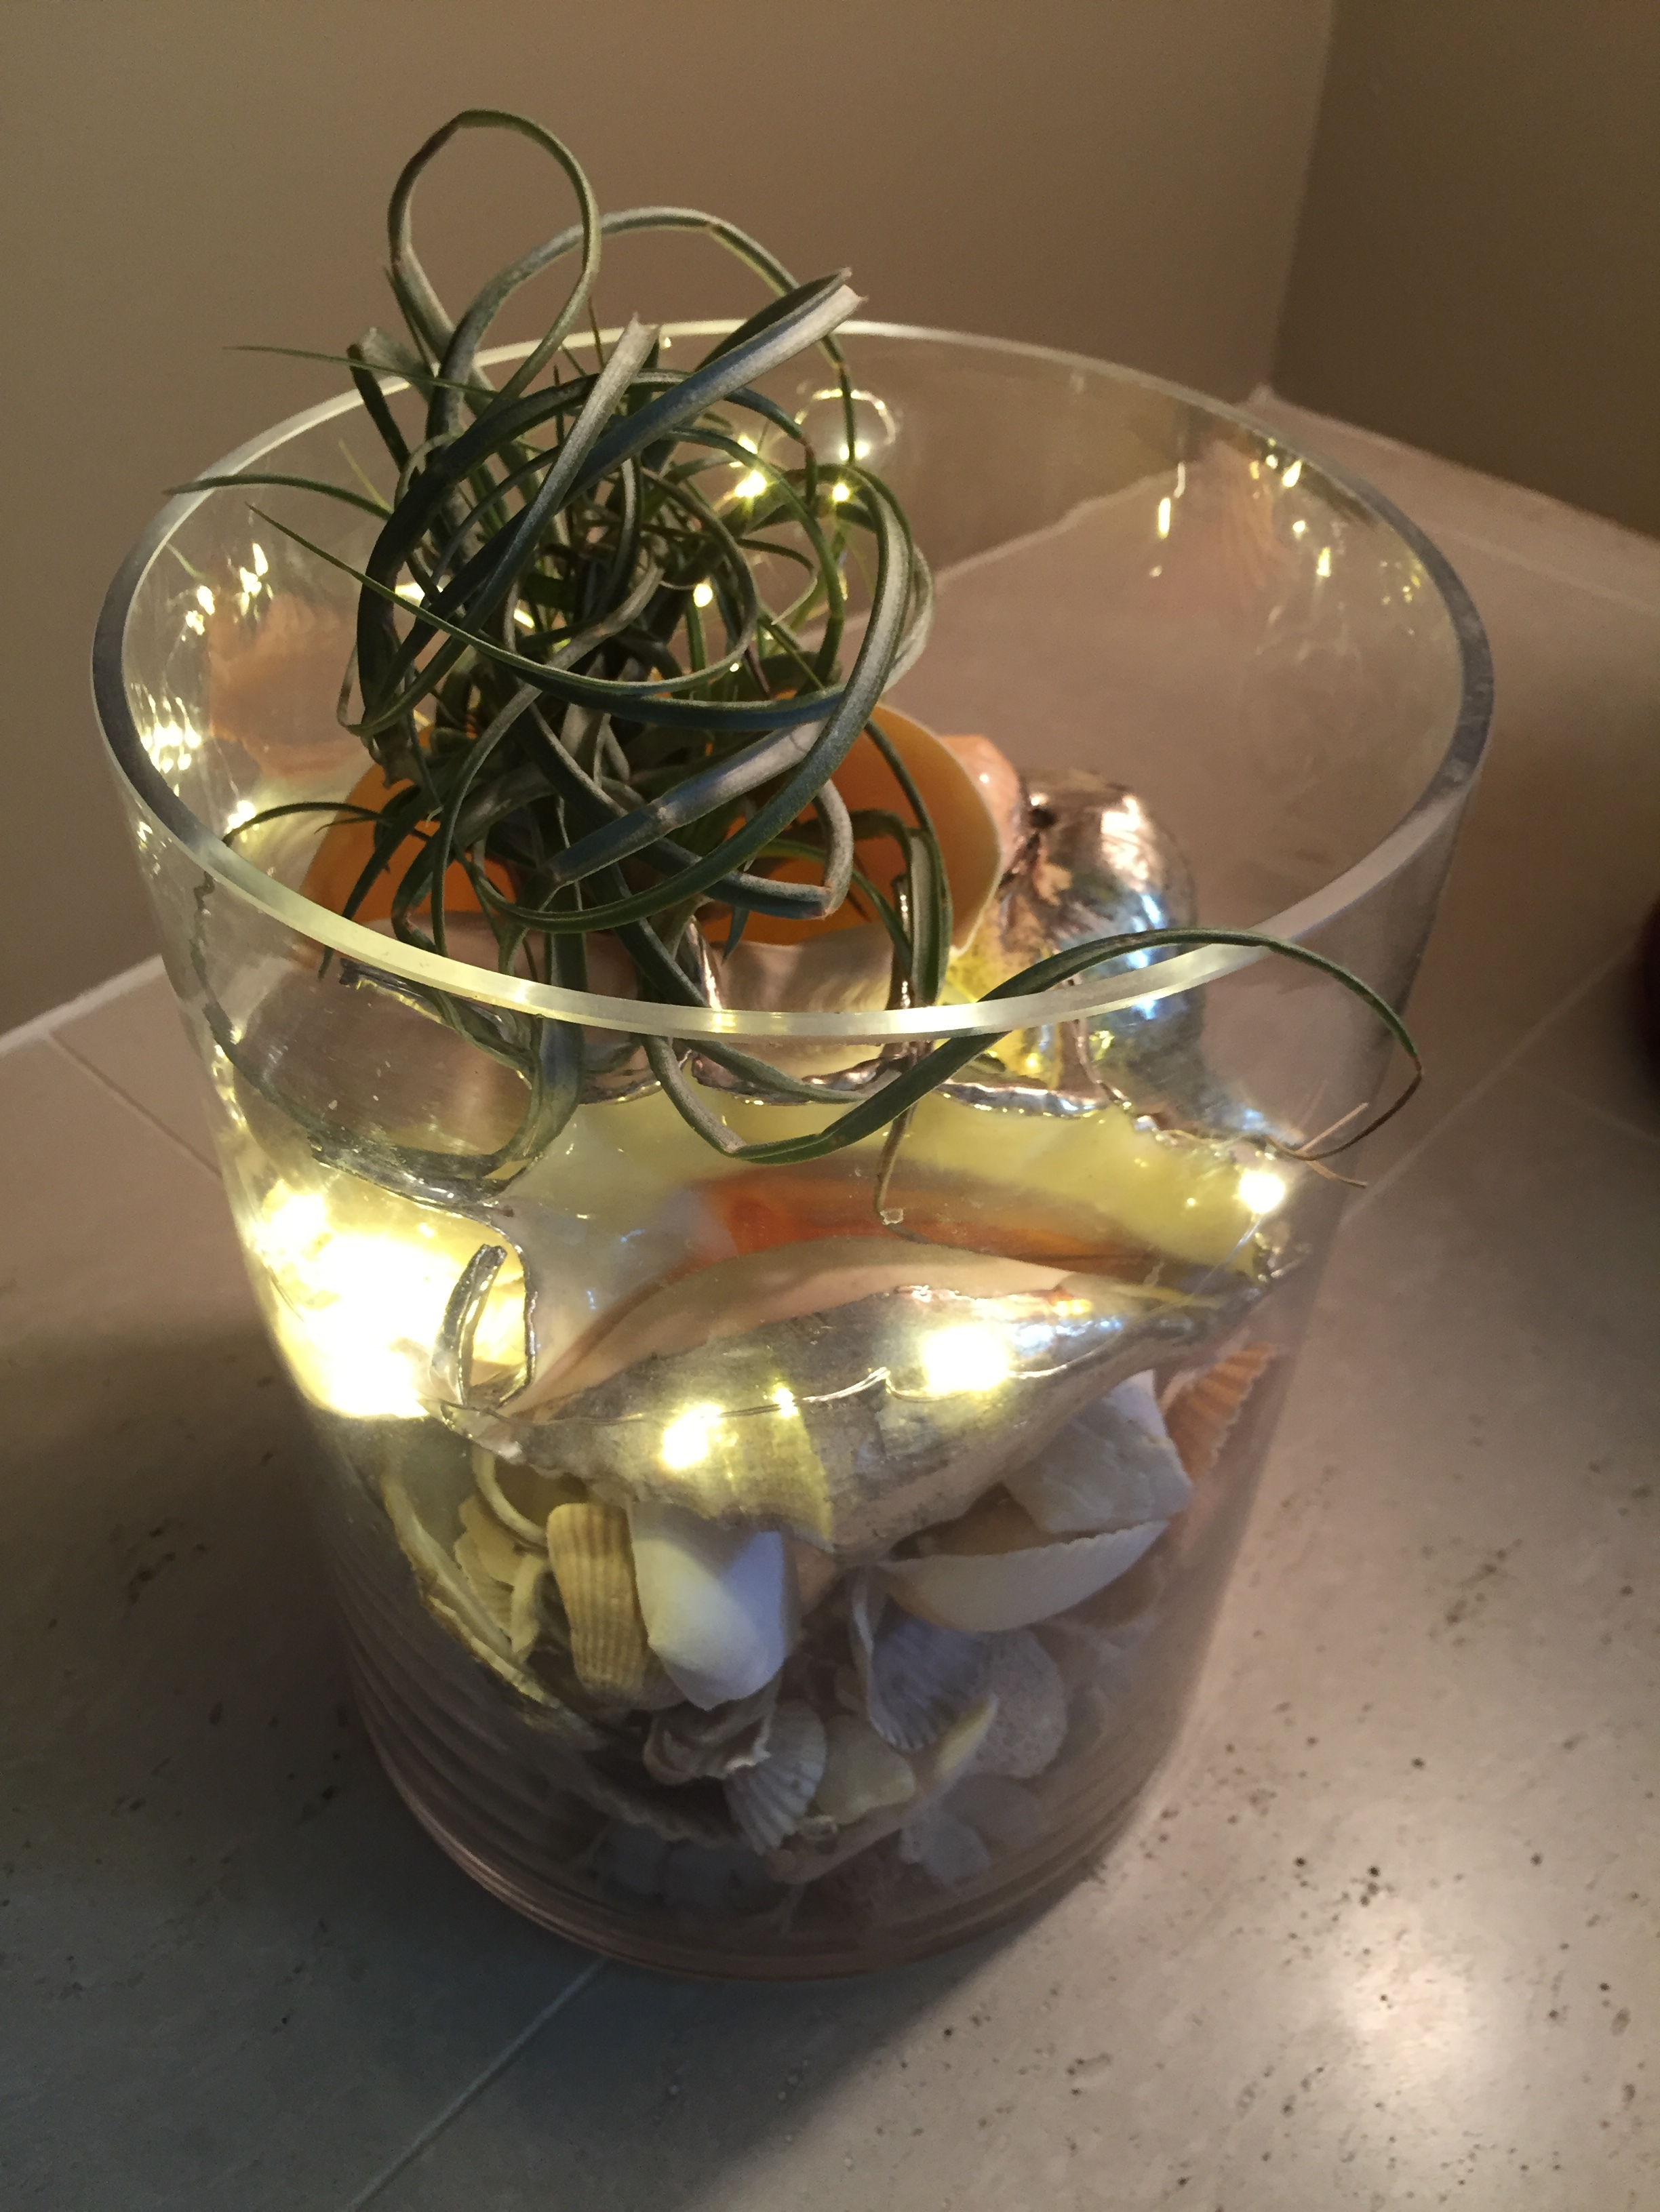 Air Plant Display Air Plants Fun Easy Plants To Care For And Display